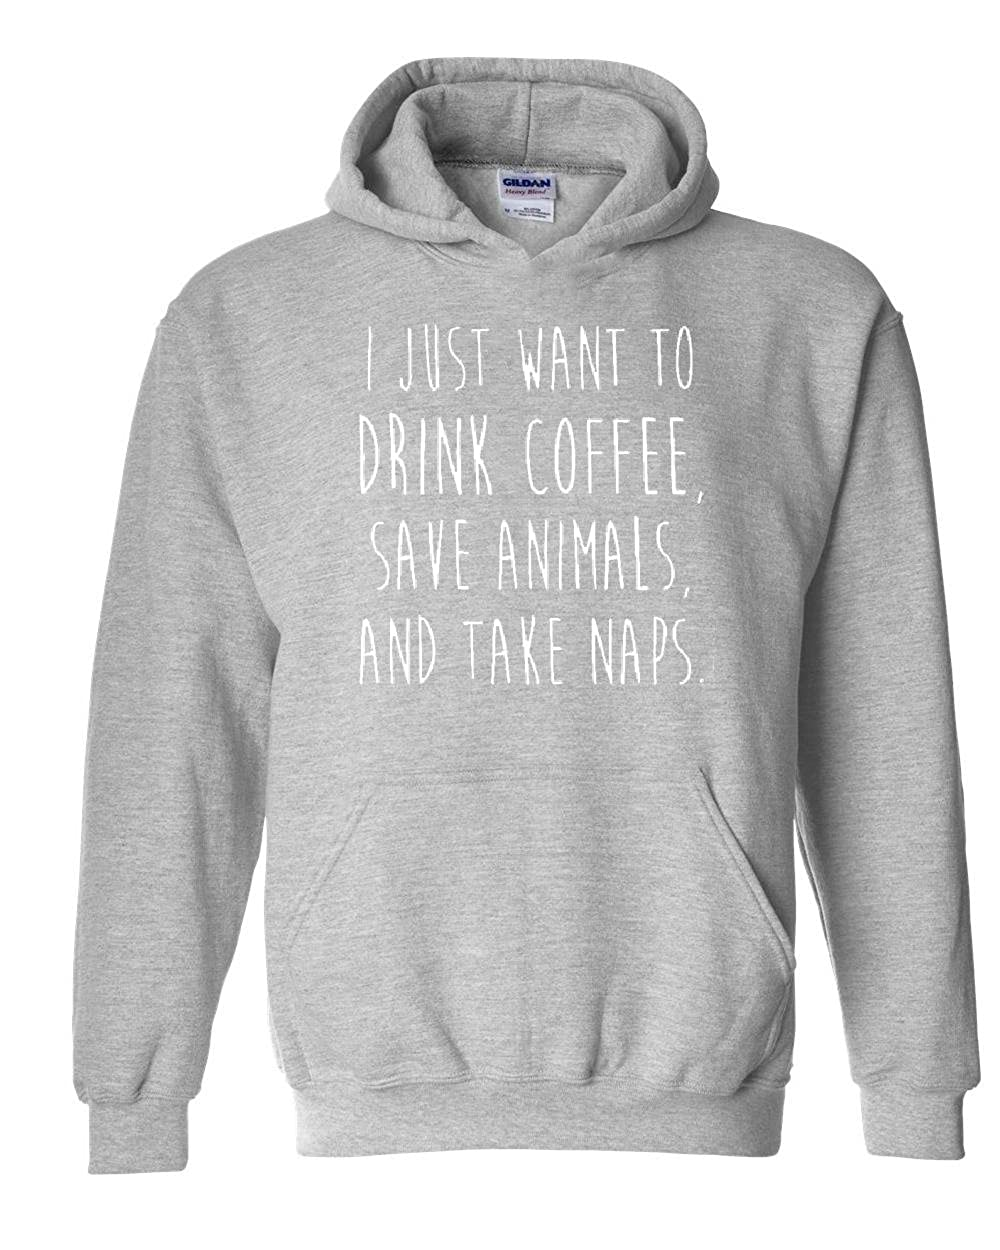 Moms Favorite I Just Want To Dink Coffee Save Animals Take Naps Unisex Hoodies Sweater